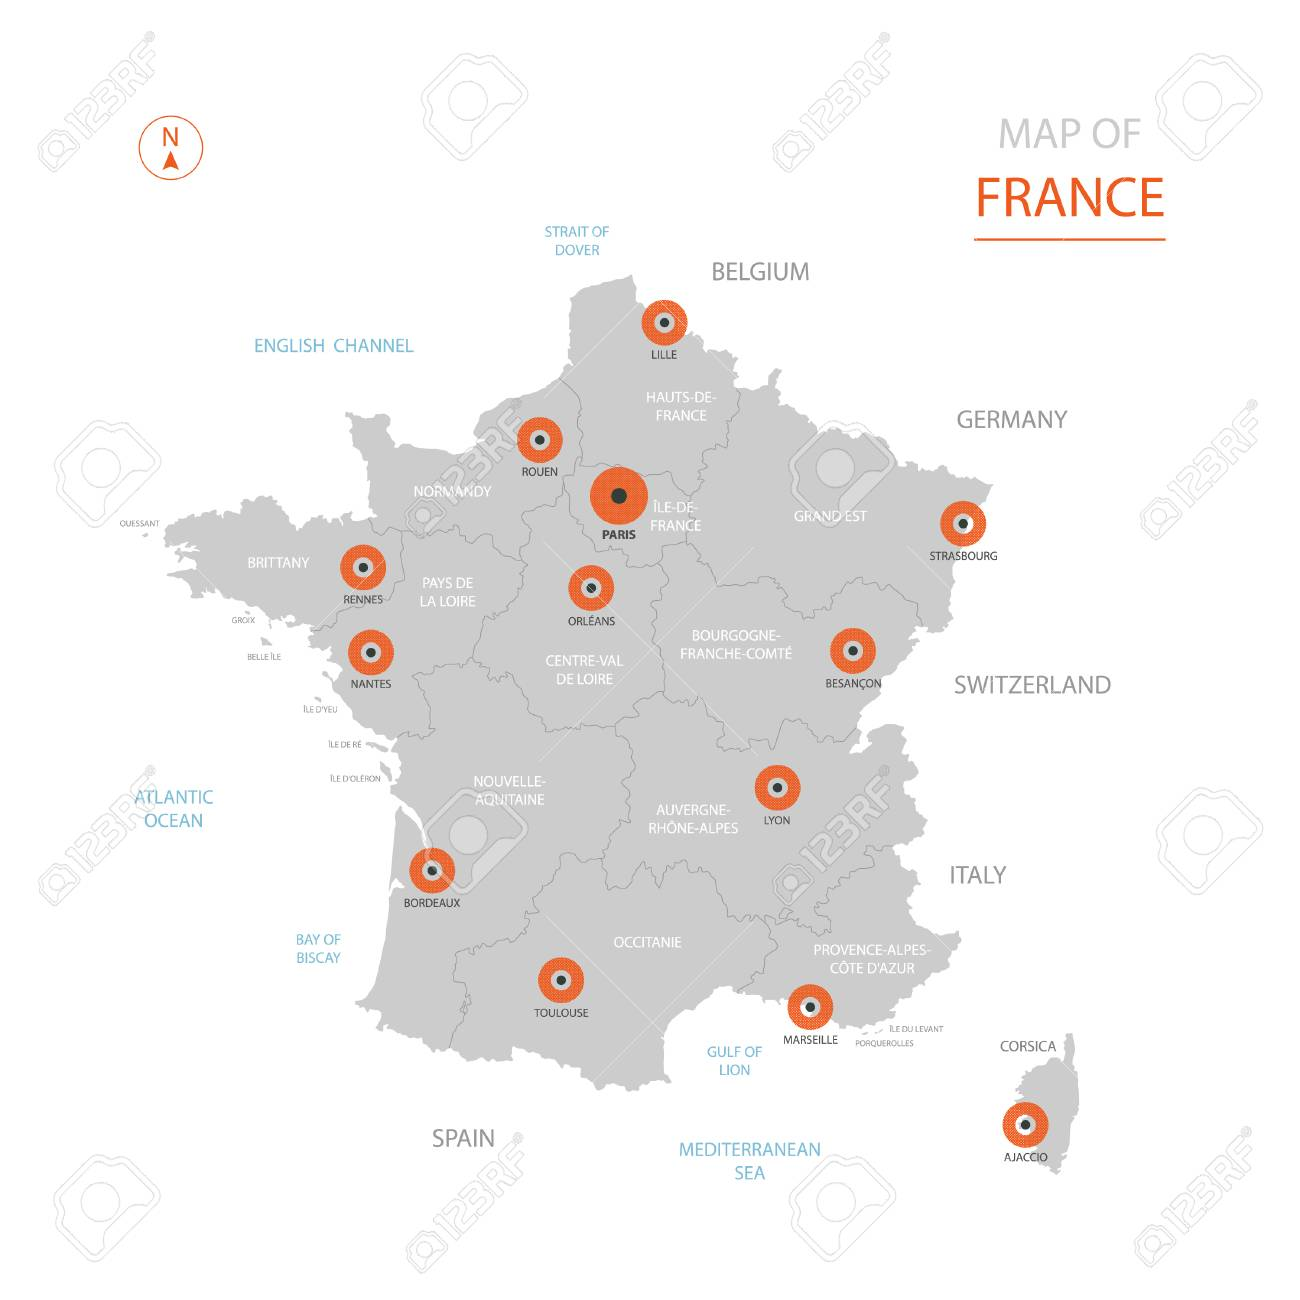 Map Of France Showing Paris.Stylized Vector France Map Showing Big Cities Capital Paris